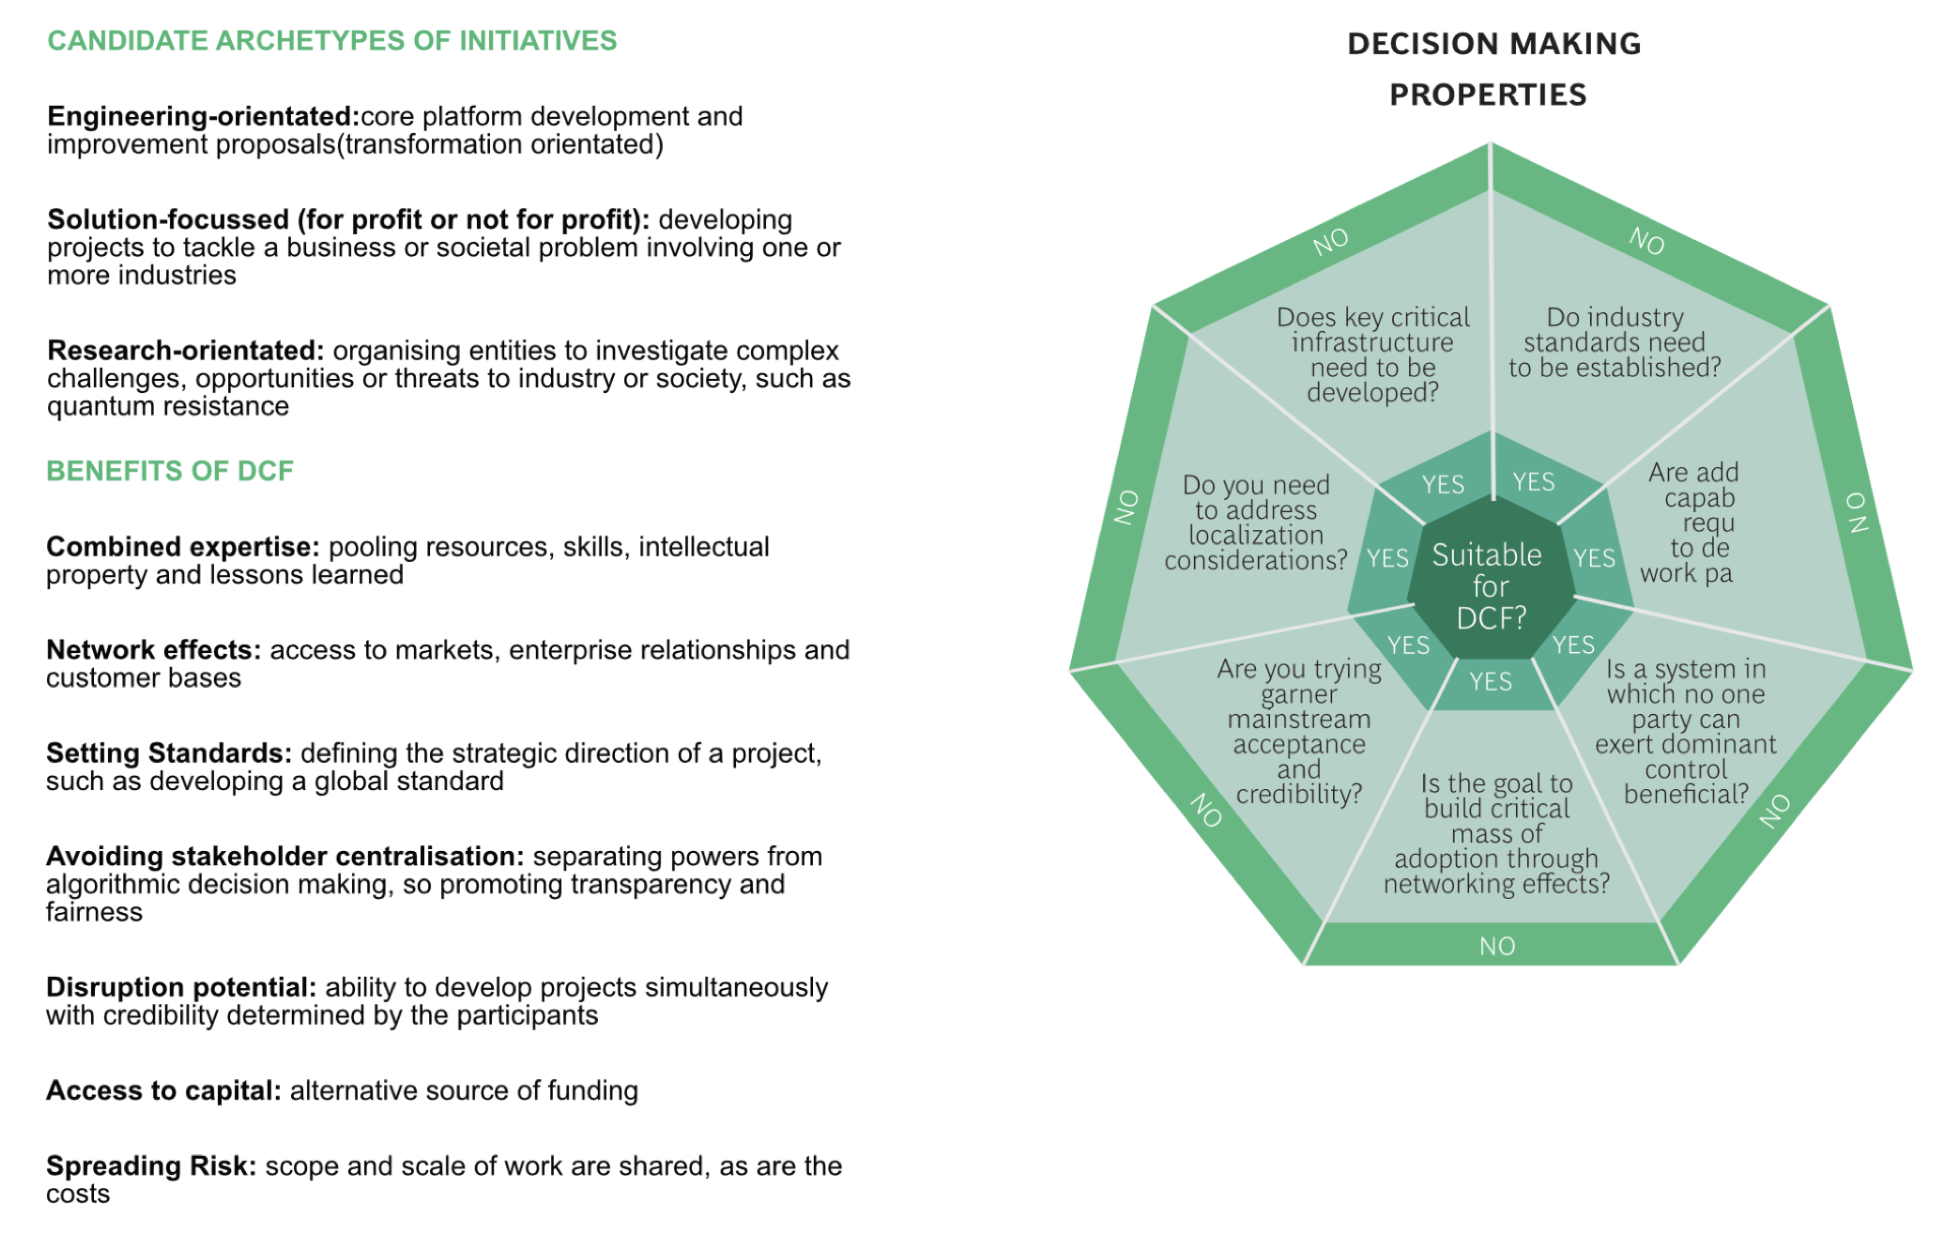 Figure 1. The DCF process: a new model of engagement, execution and governance